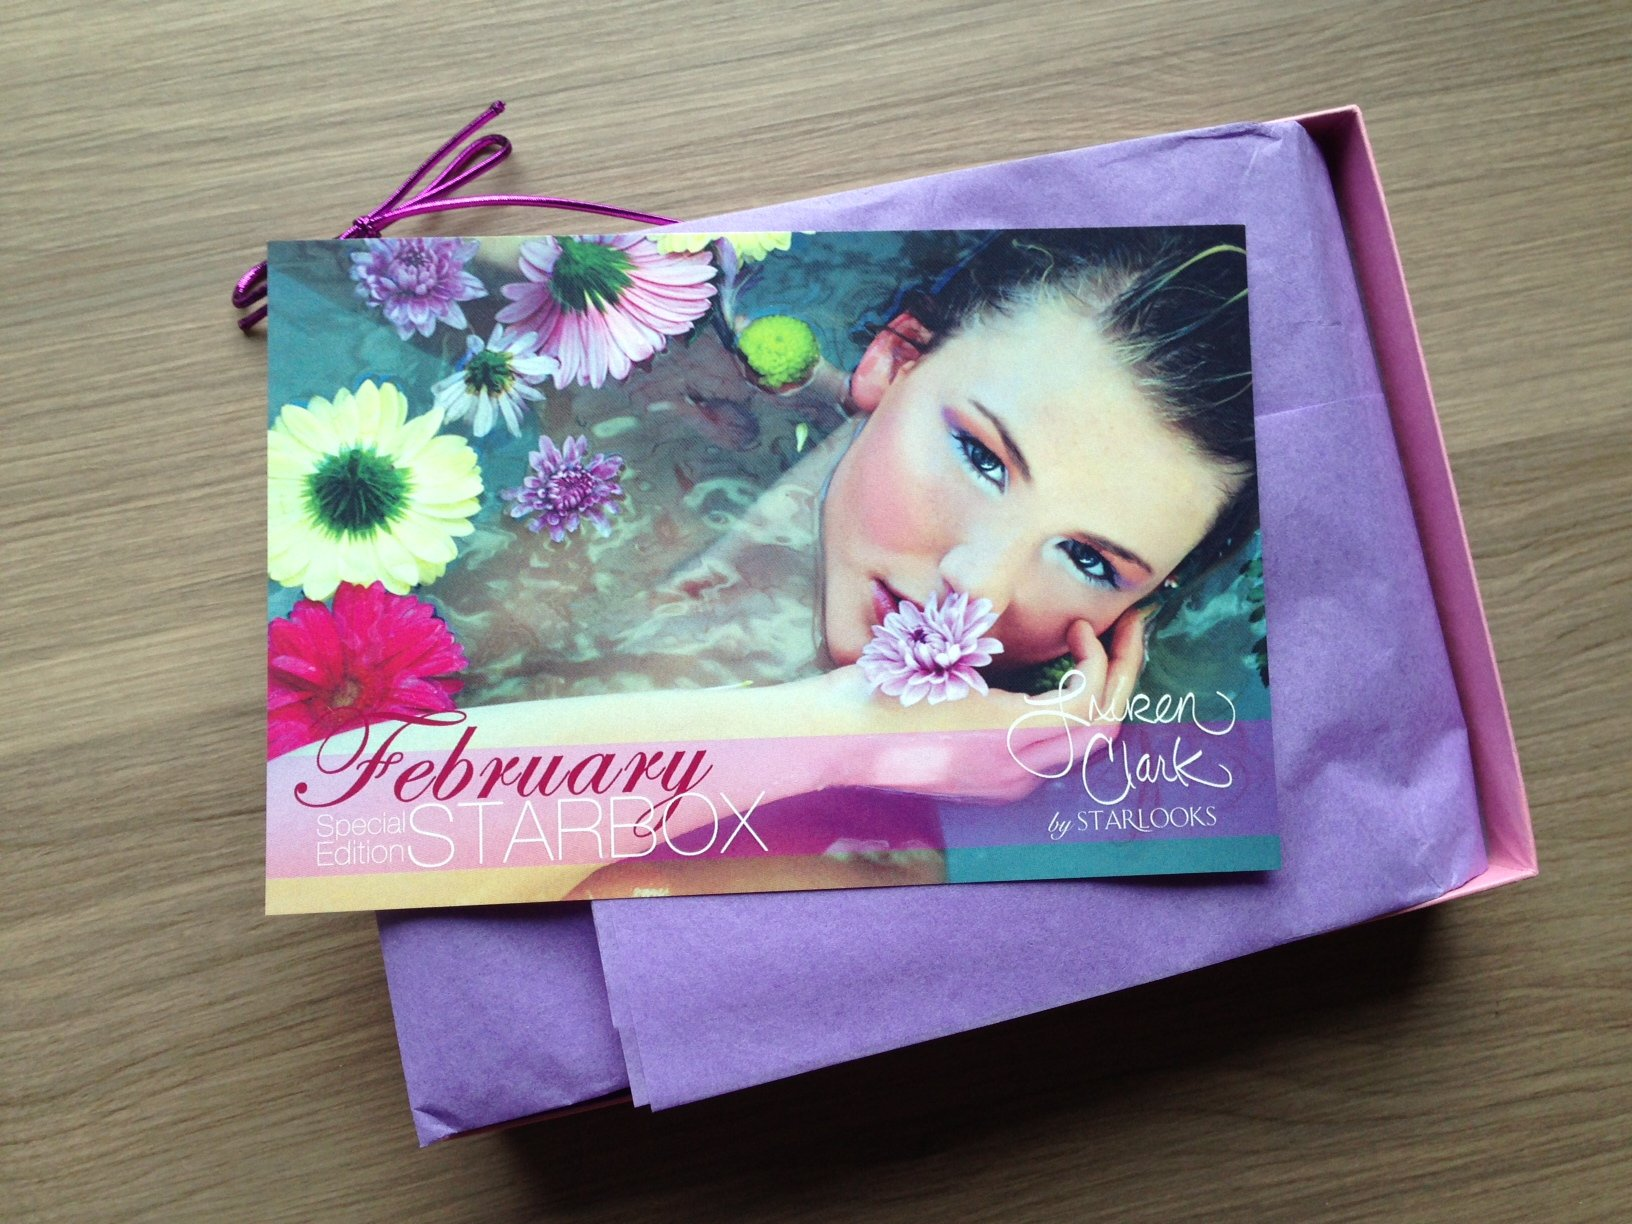 Starlooks Starbox February 2013 Review – Monthly Makeup Subscription Boxes